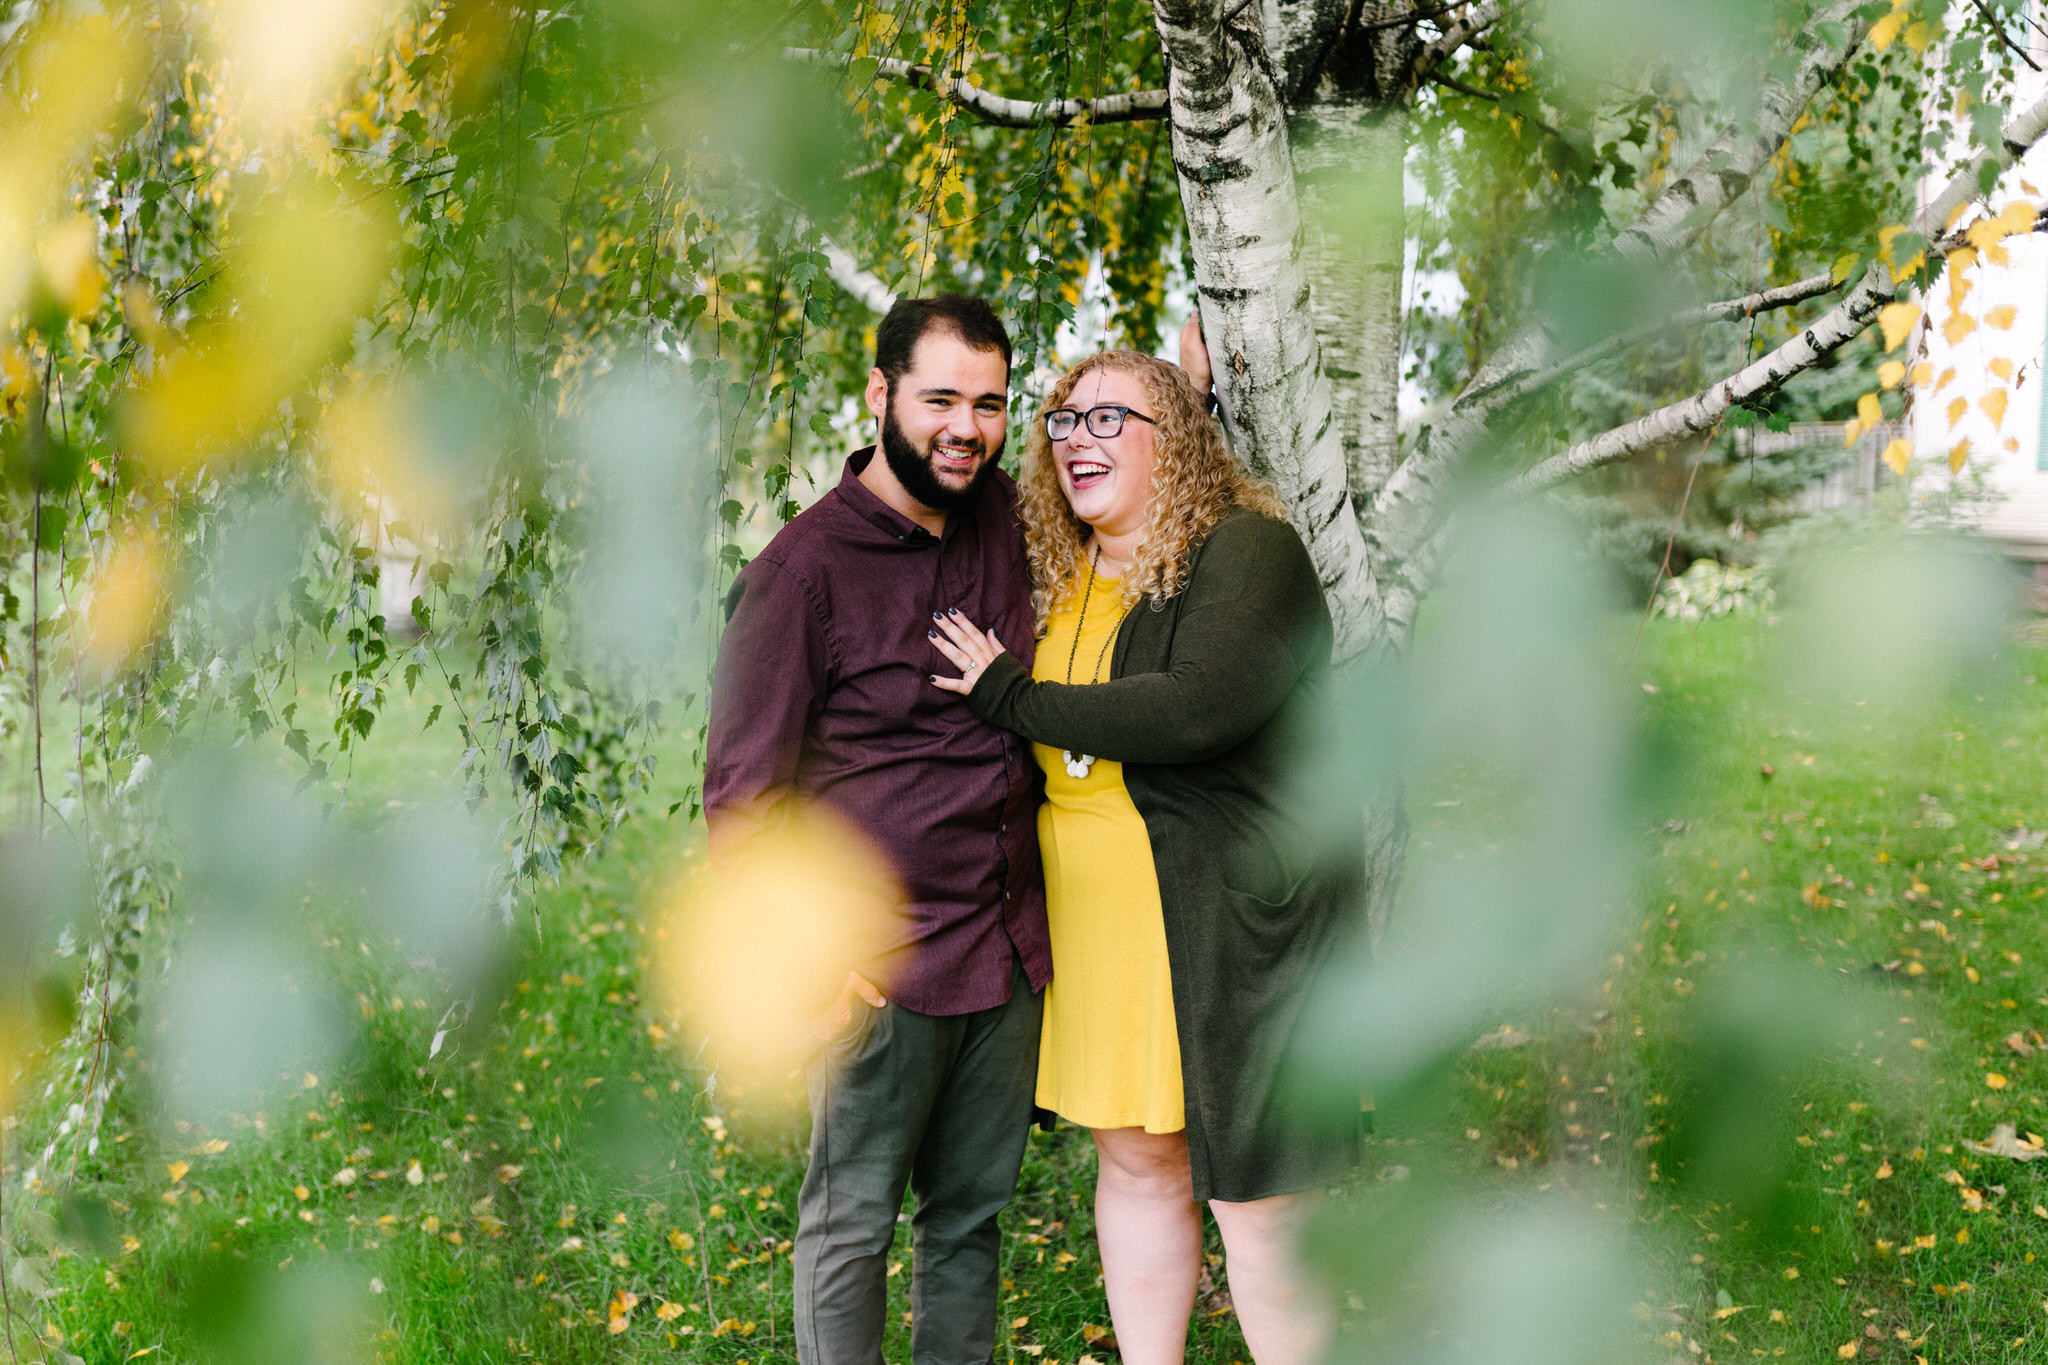 010-rempel-photography-wedding-chicago-family-oak-park-austin-brooklyn-engagement-grand-rapids-apple-orchard-robinettes.jpg